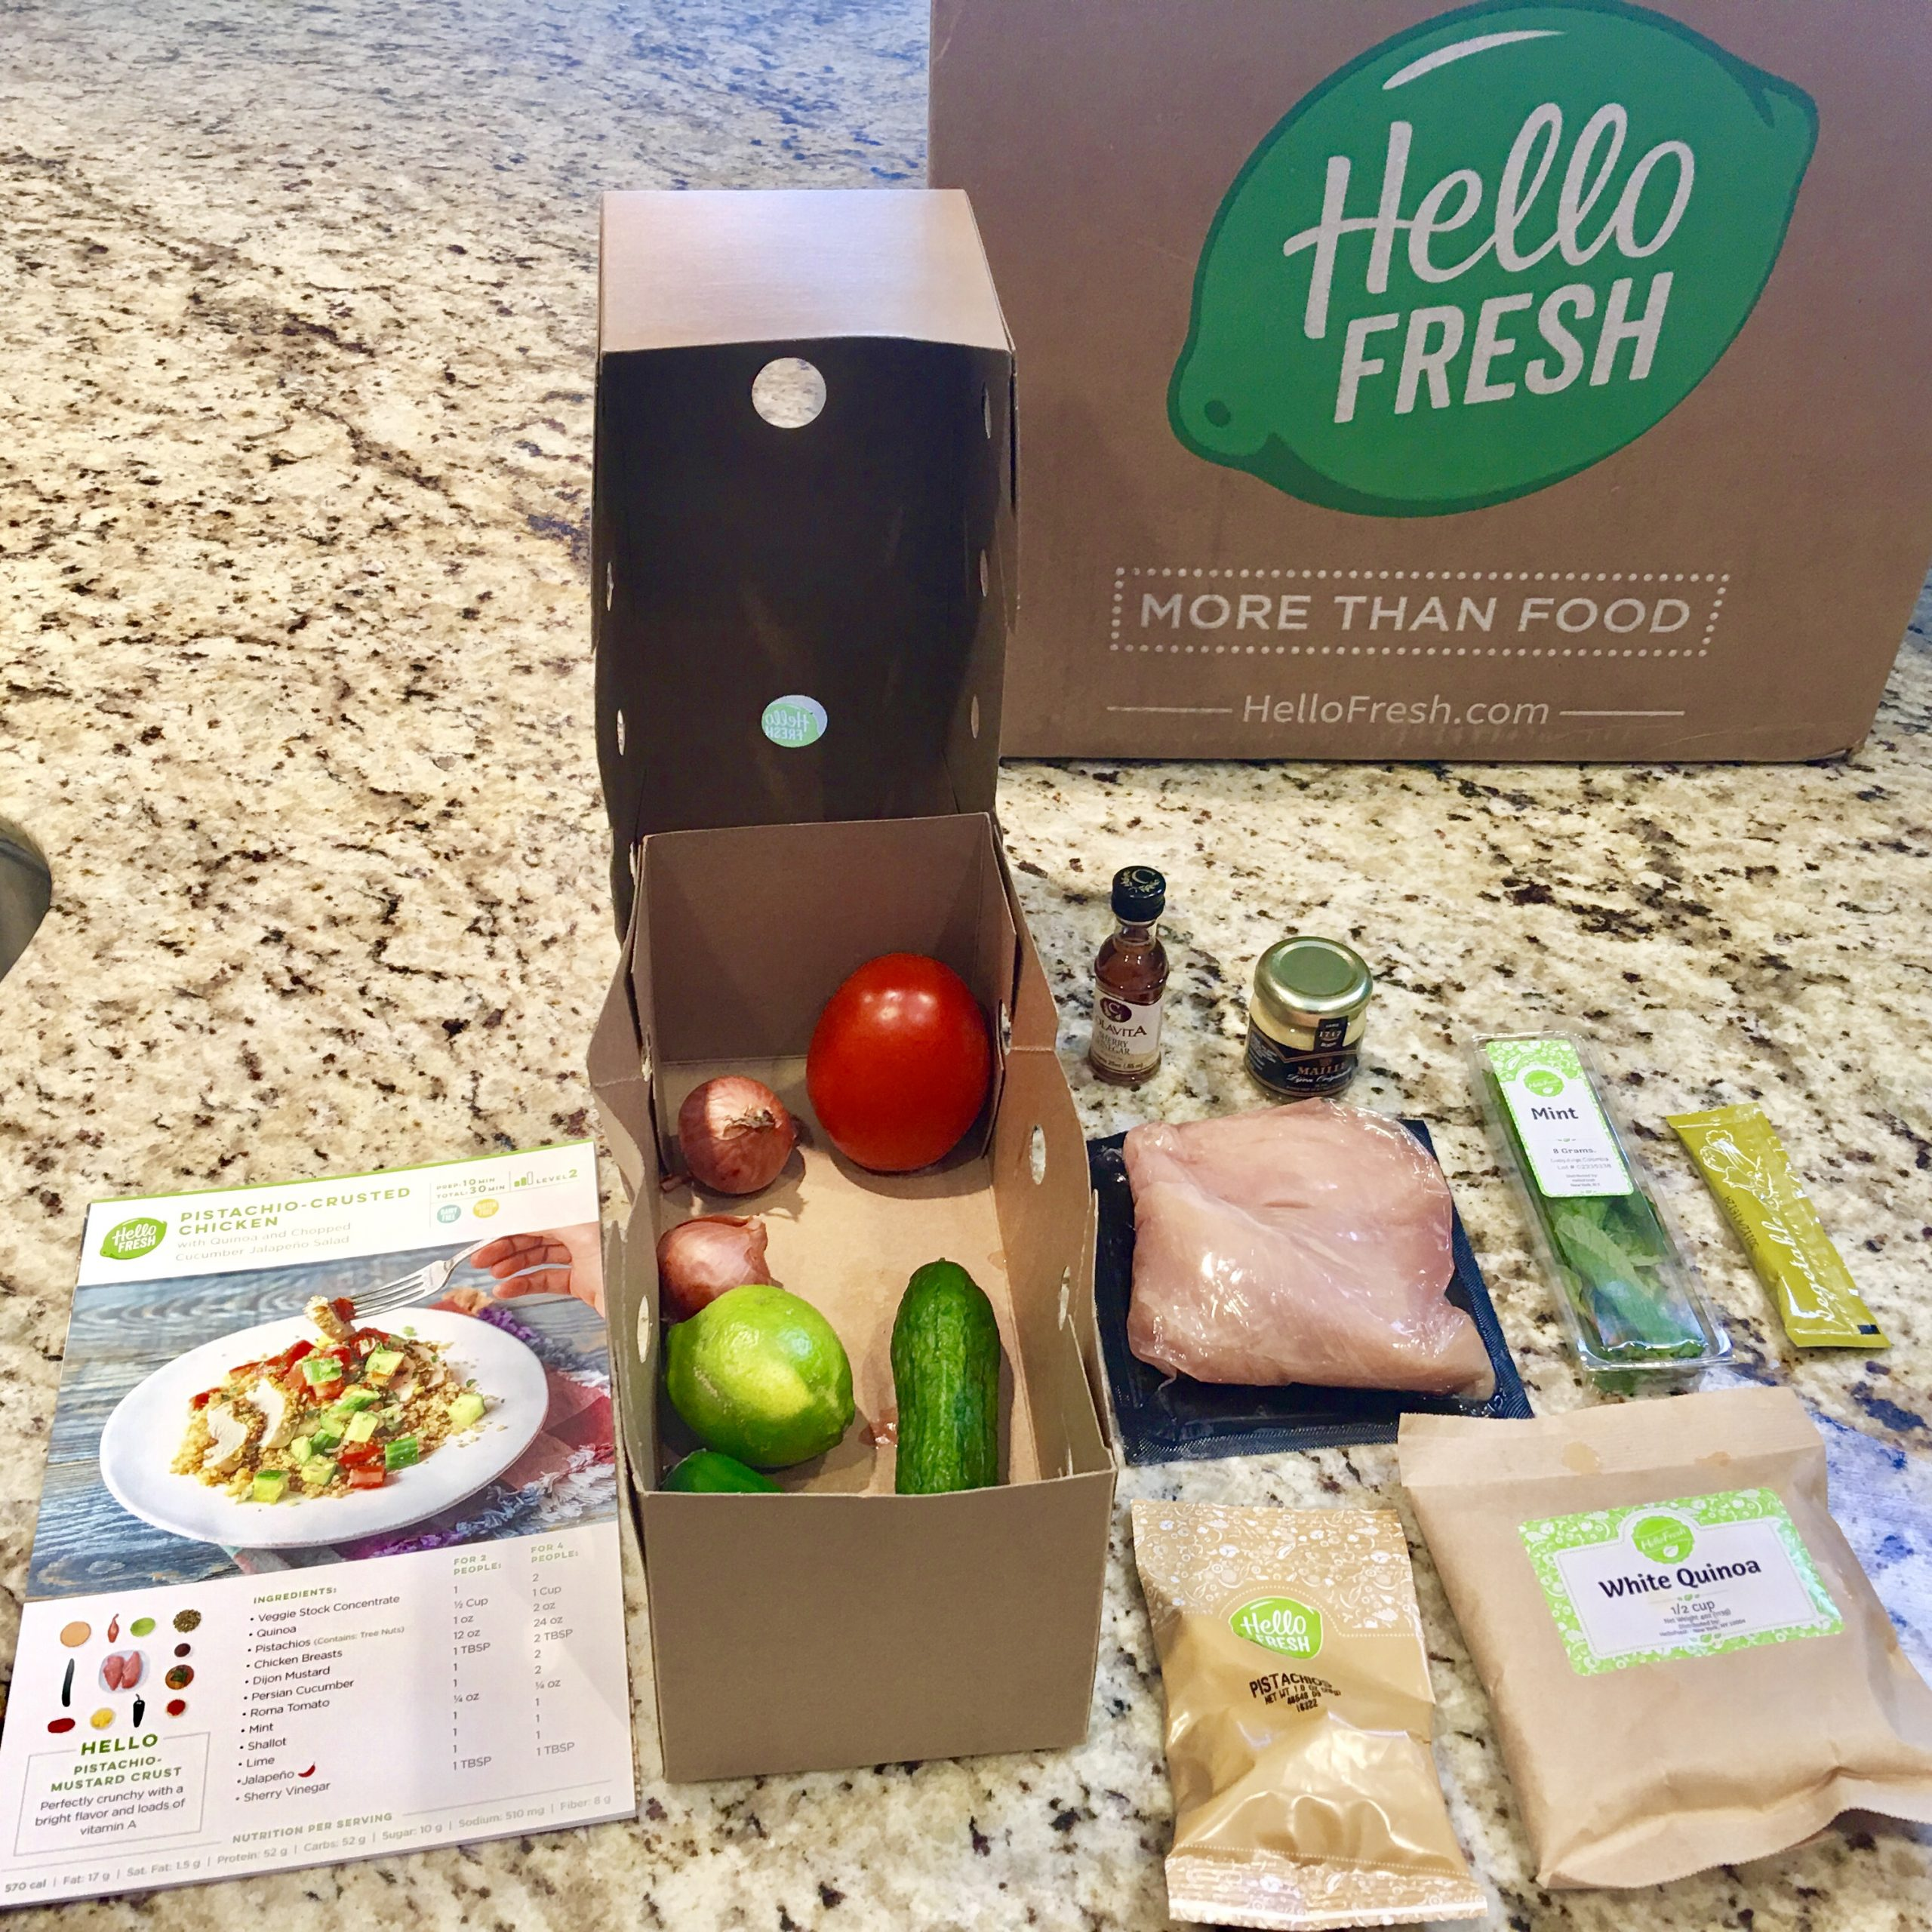 Meal Kit Delivery Service Hellofresh Cheapest Deal April